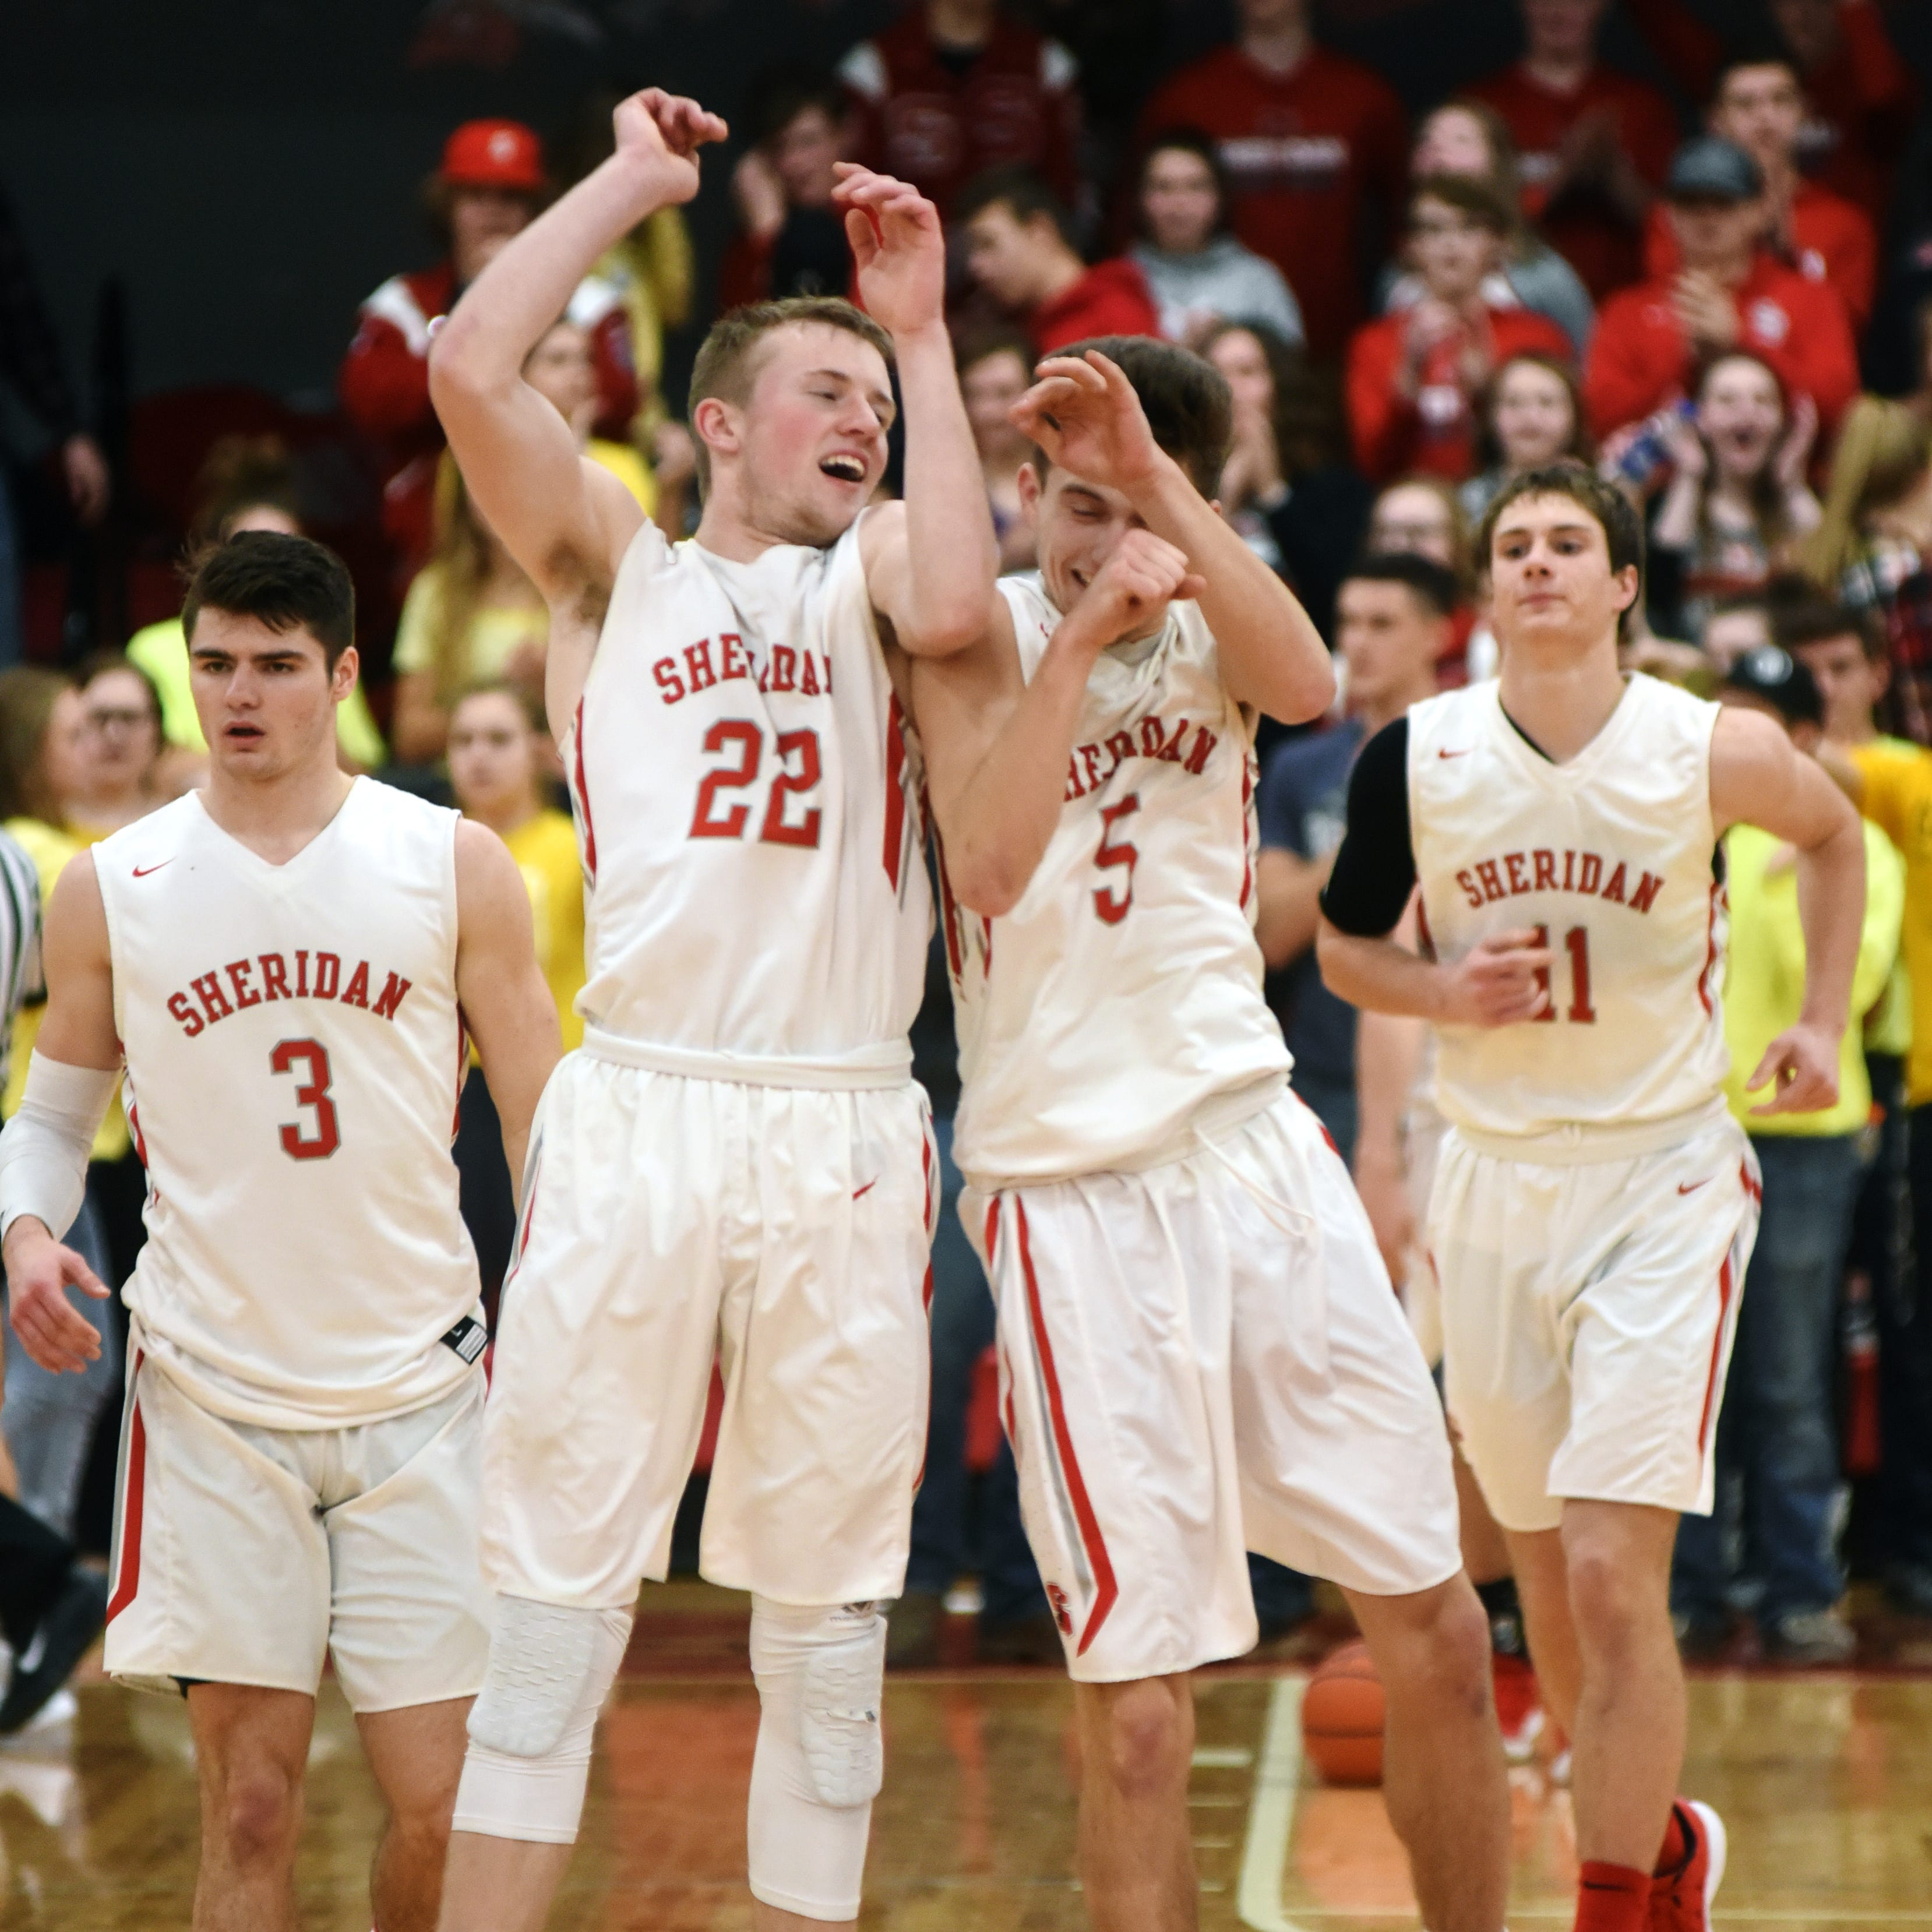 It's a wrap: John Glenn, Sheridan eyeing tourney play